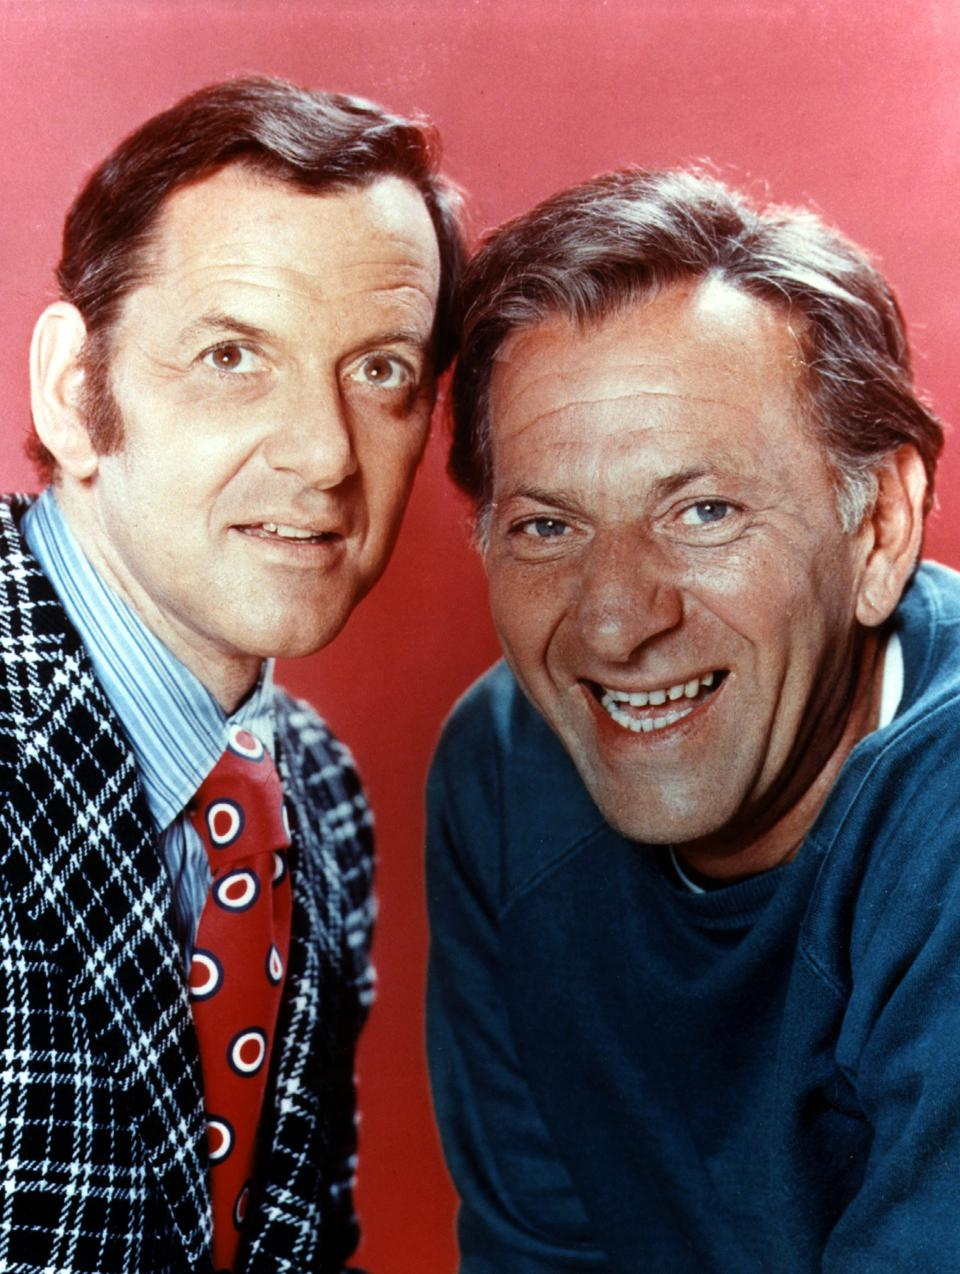 ABC sitcom ″The Odd Couple,″ starring Tony Randall and Jack Klugman, debuted on September 24, 1970.